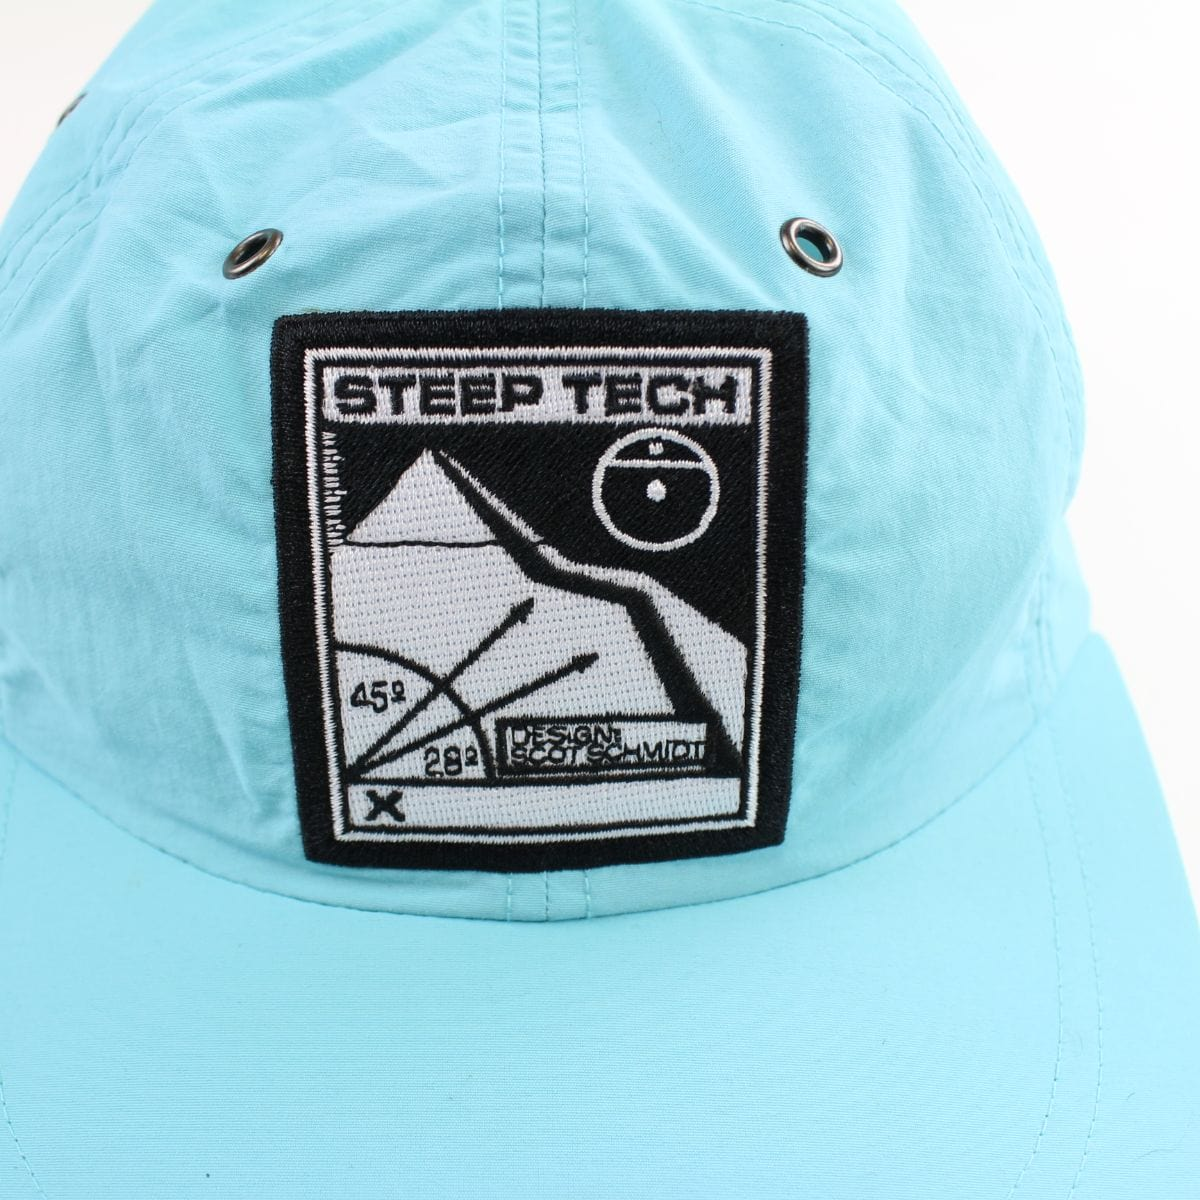 supreme x the north face Steep Tech teal 6panel cap 2016 - SaruGeneral